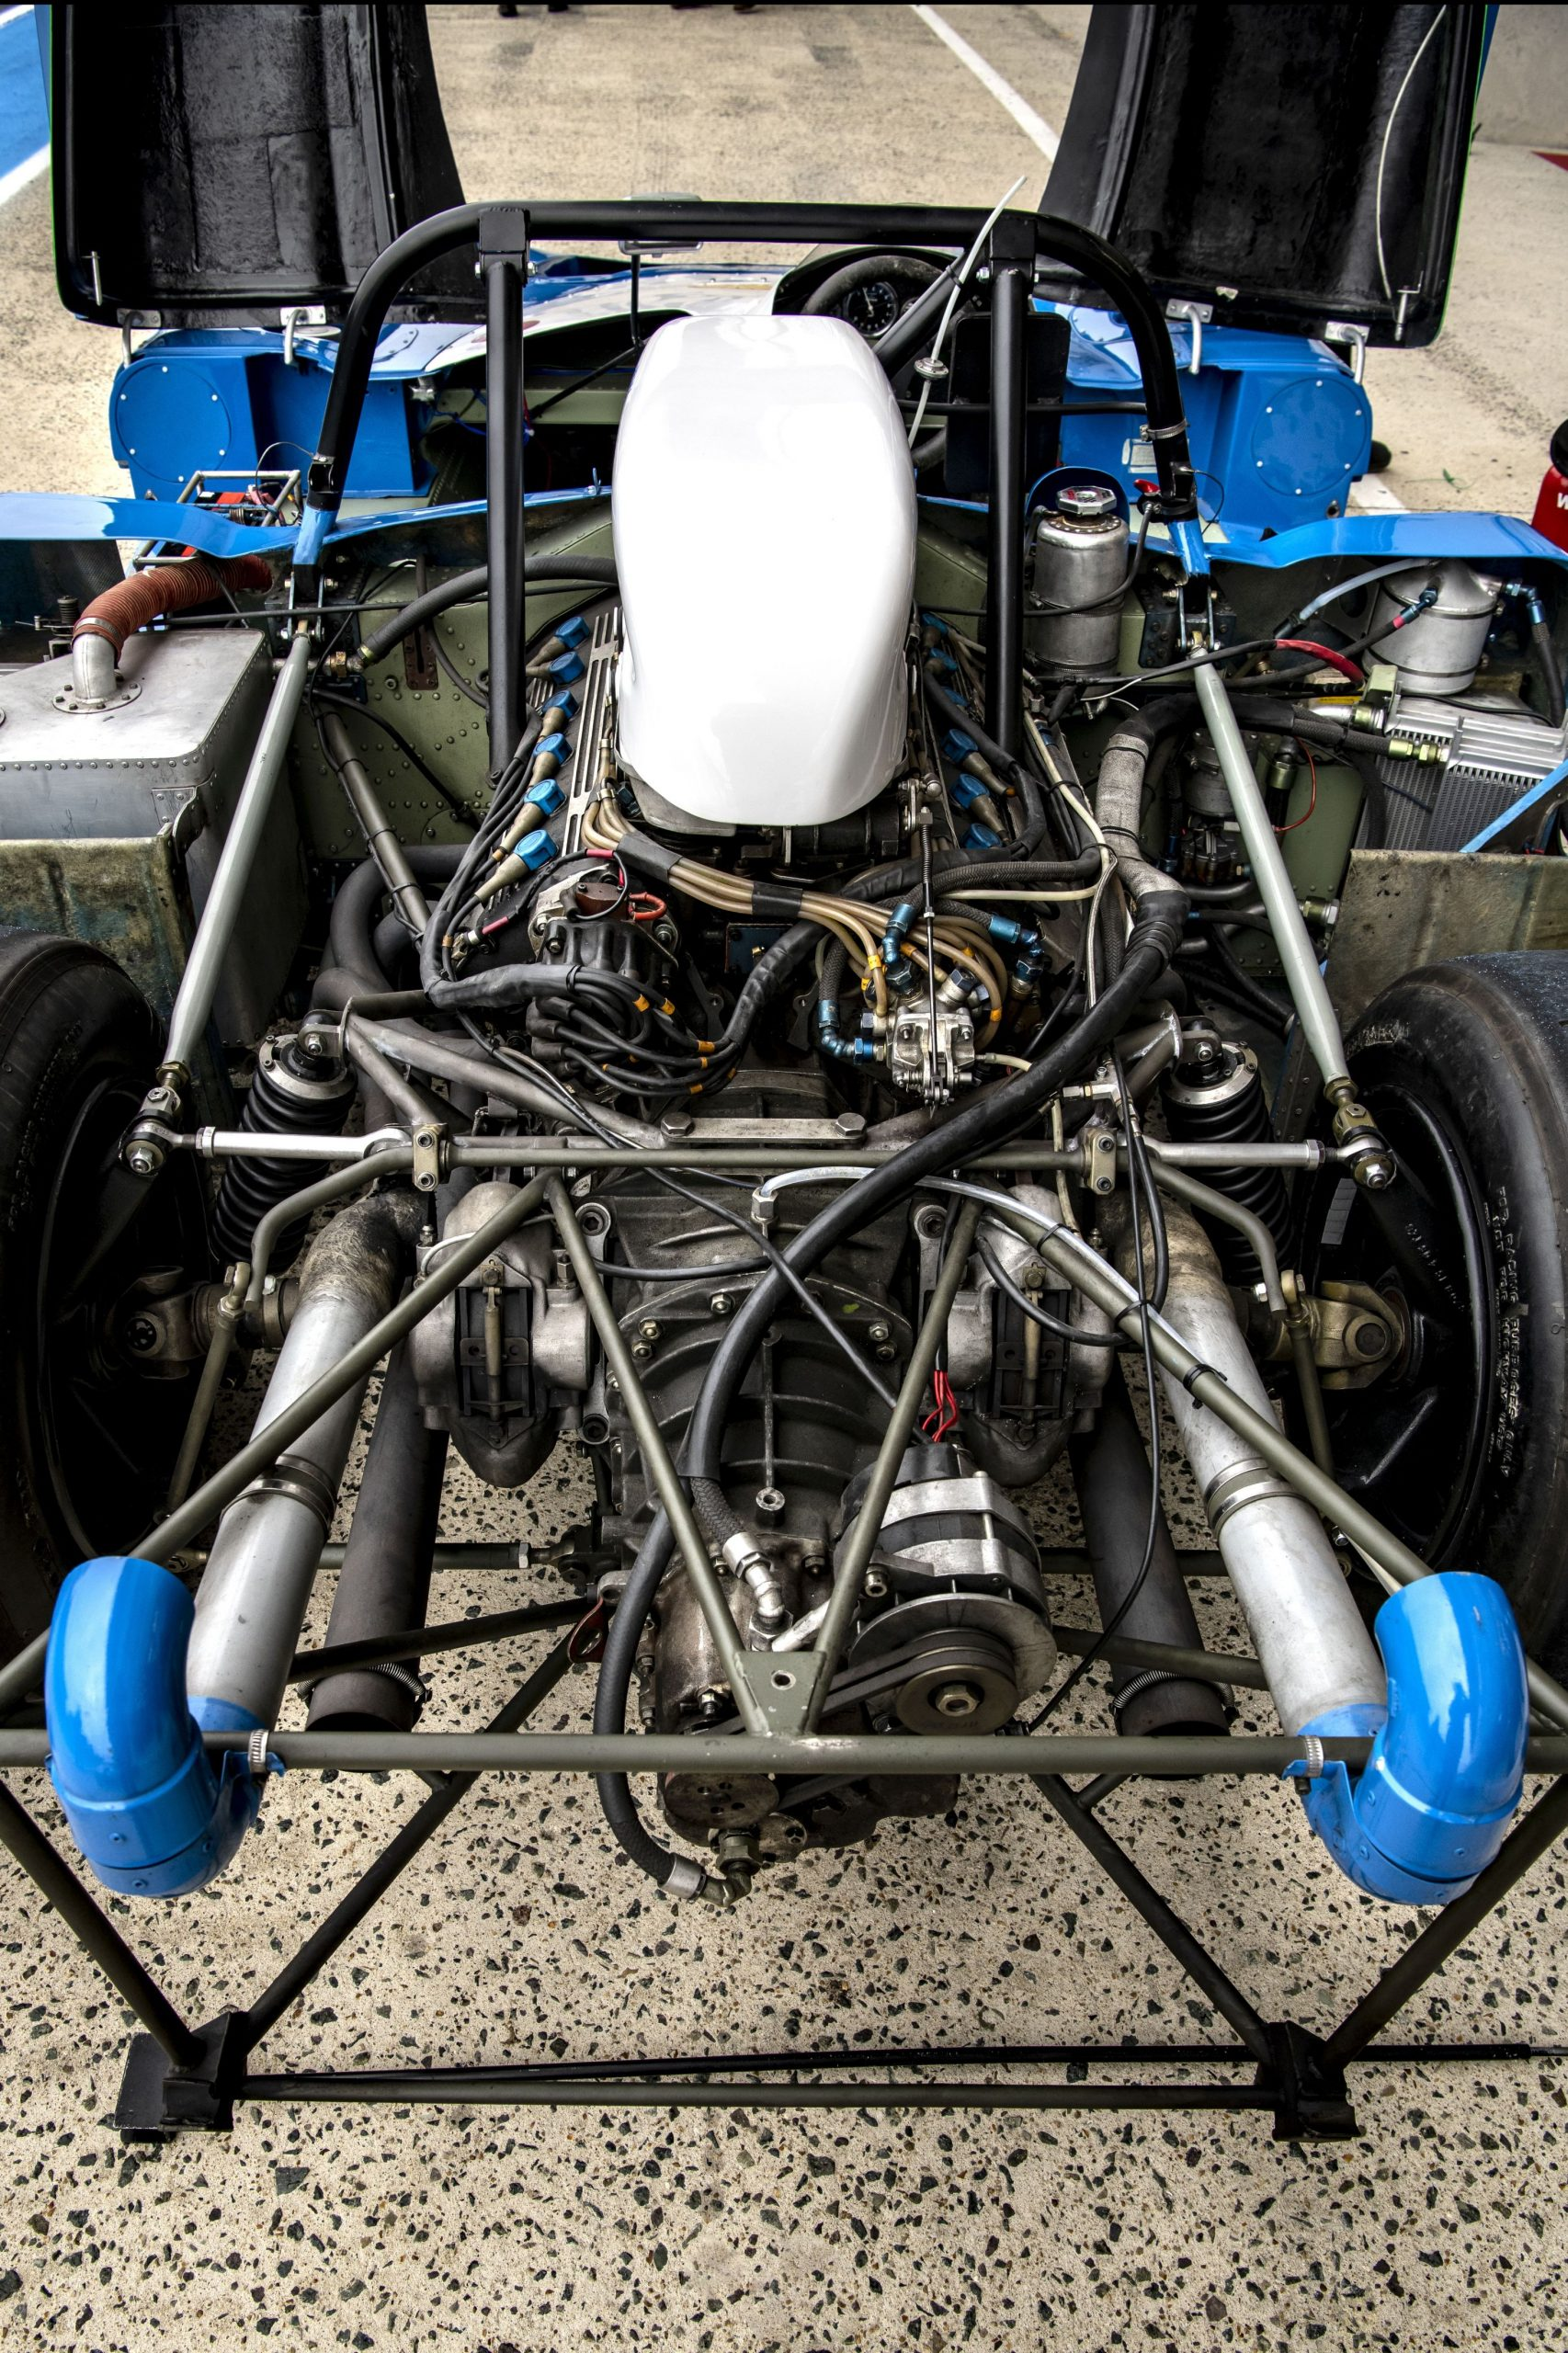 1972 Matra MS 670 rear engine chassis